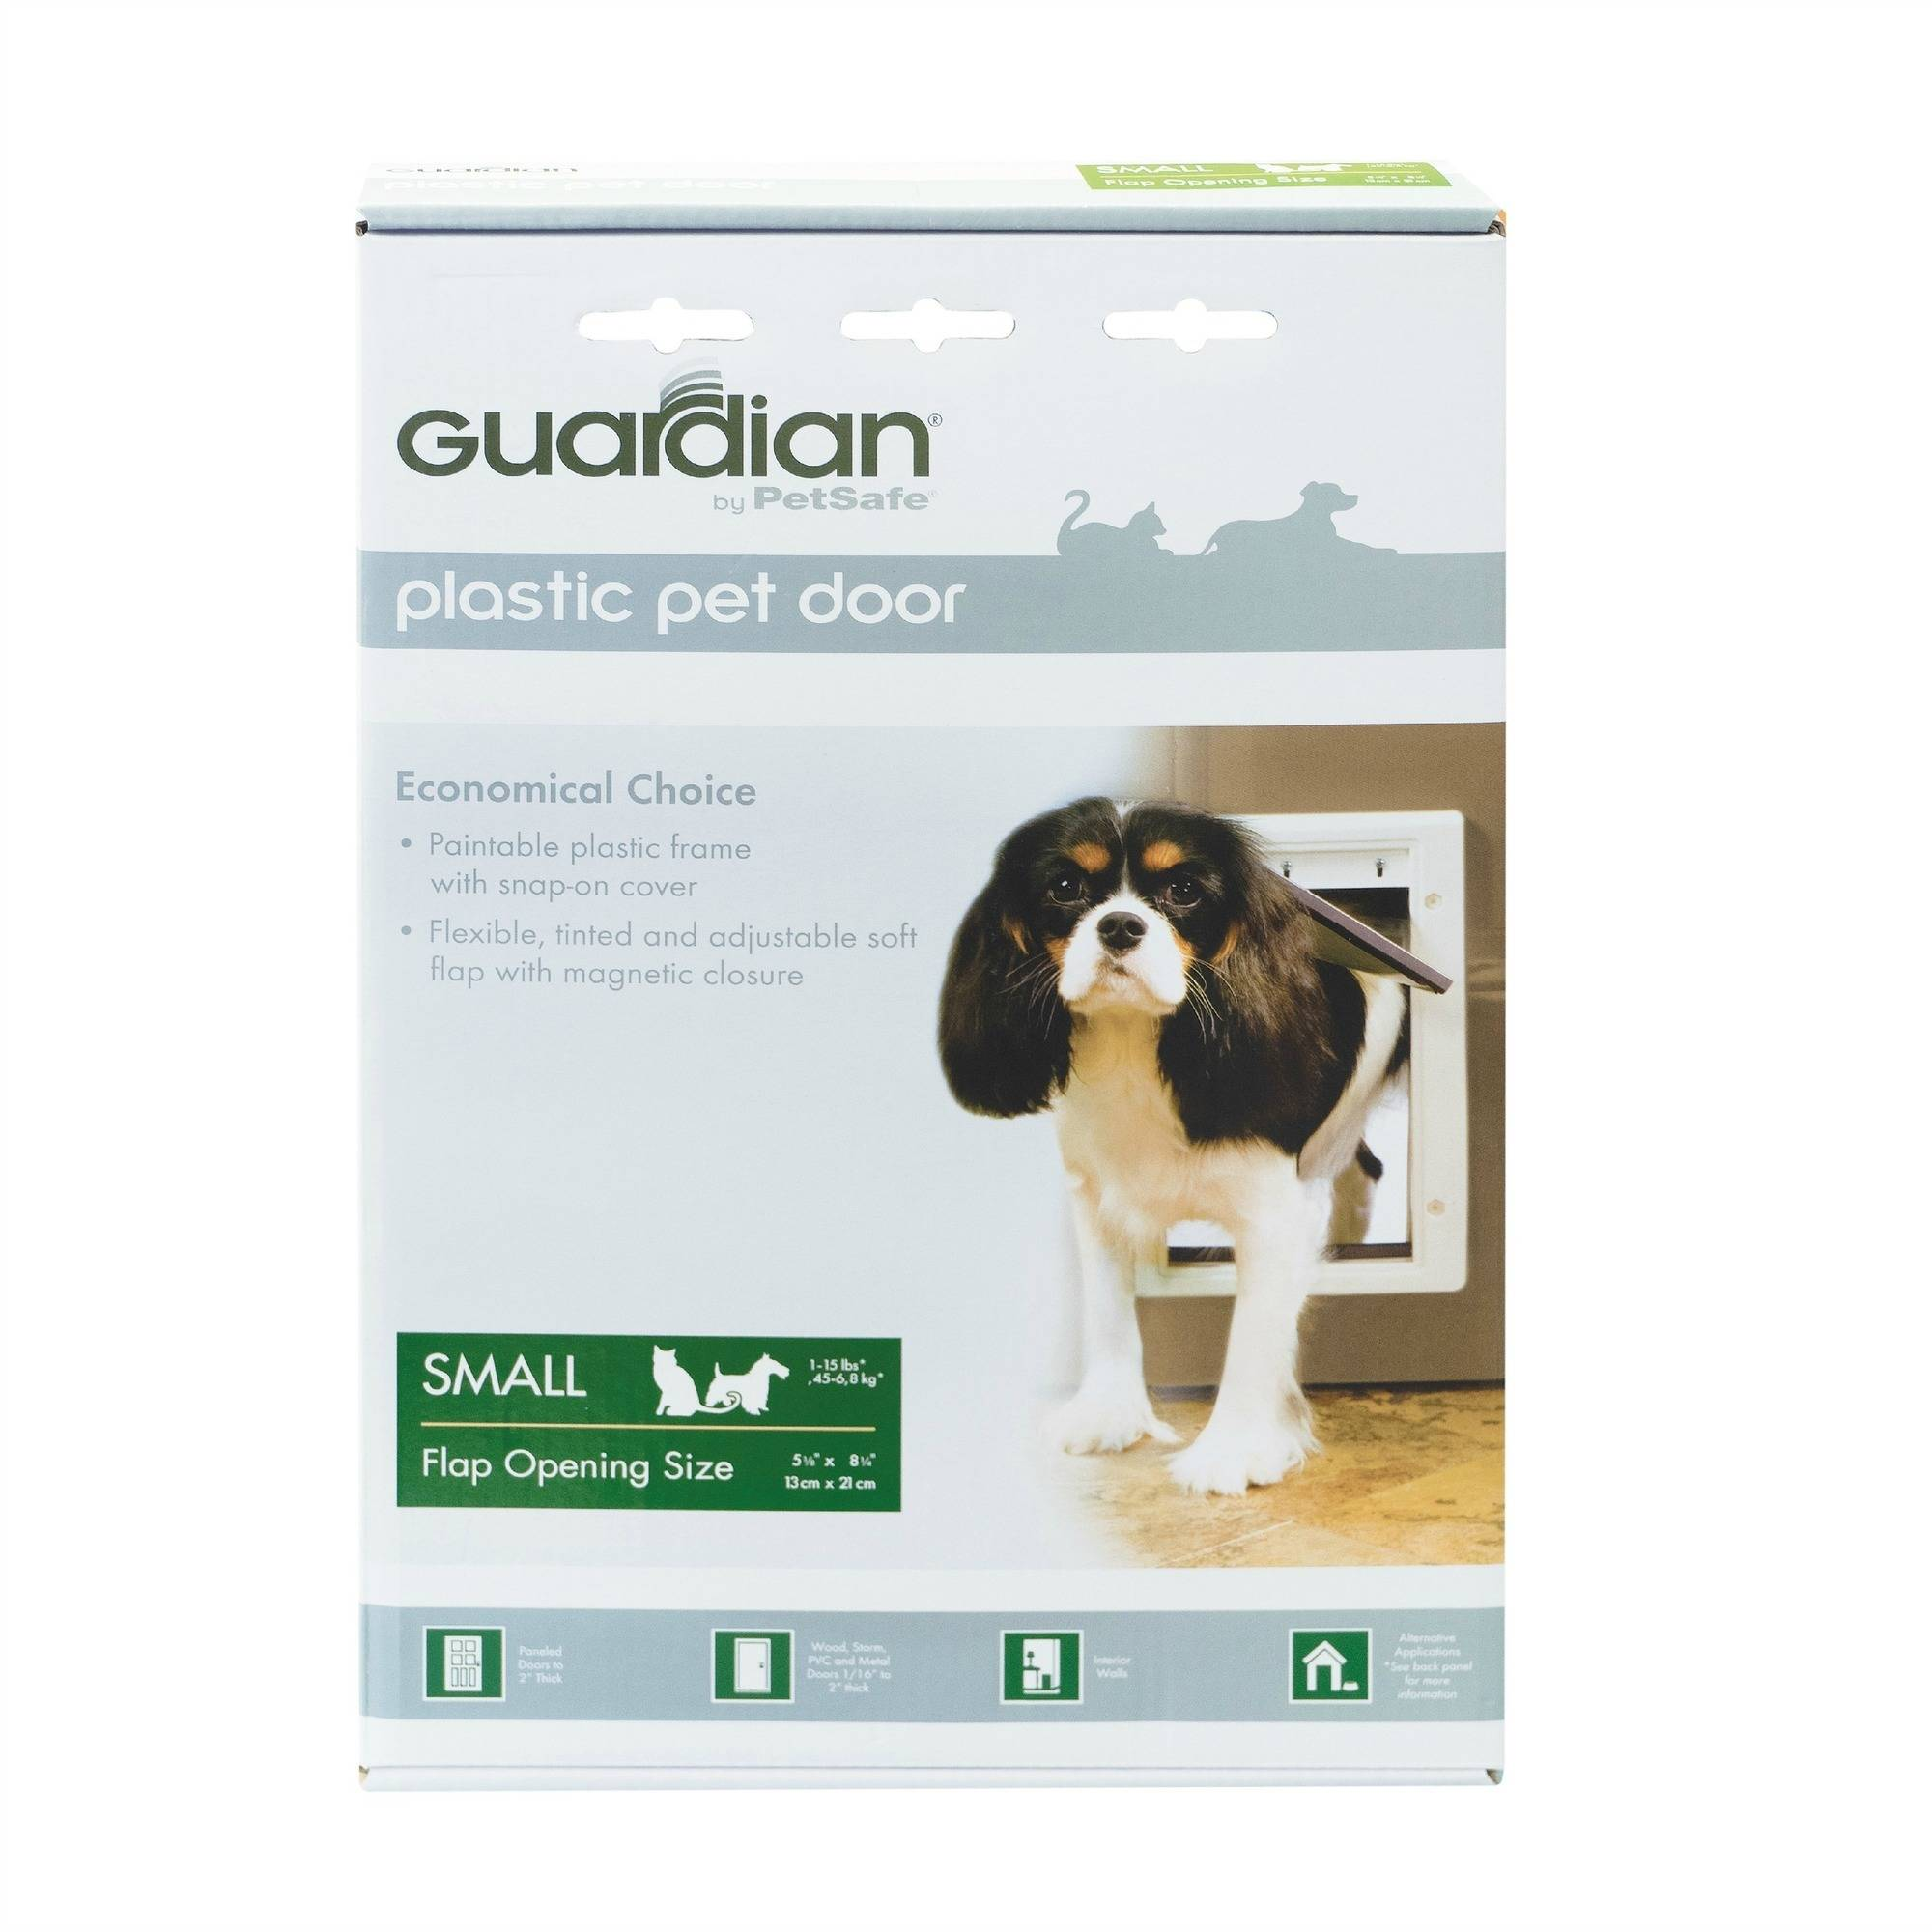 petsafe lovely pets pet of doors dog clean plastic for easy white bed by door guardian to